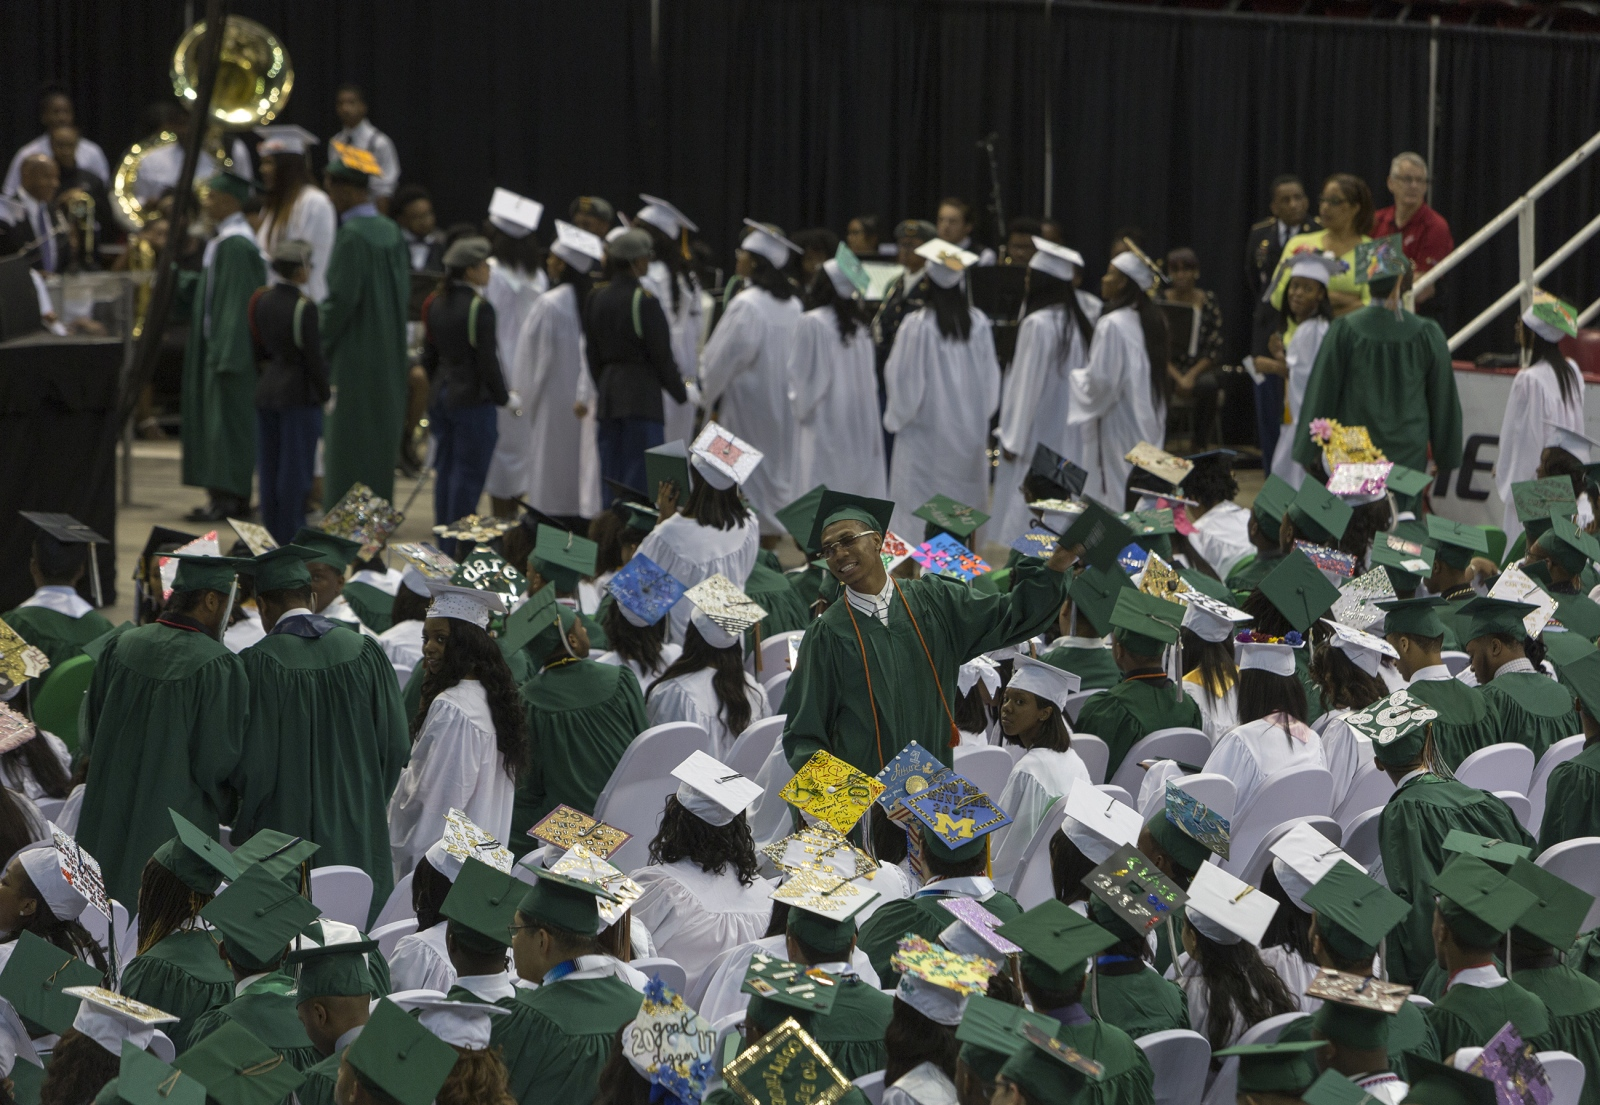 Michael Green, 18, holding his diploma, turns toward the crowd looking for his mother and grandmother, after walking across the stage during his high school graduation at Joe Louis Arena in Detroit.